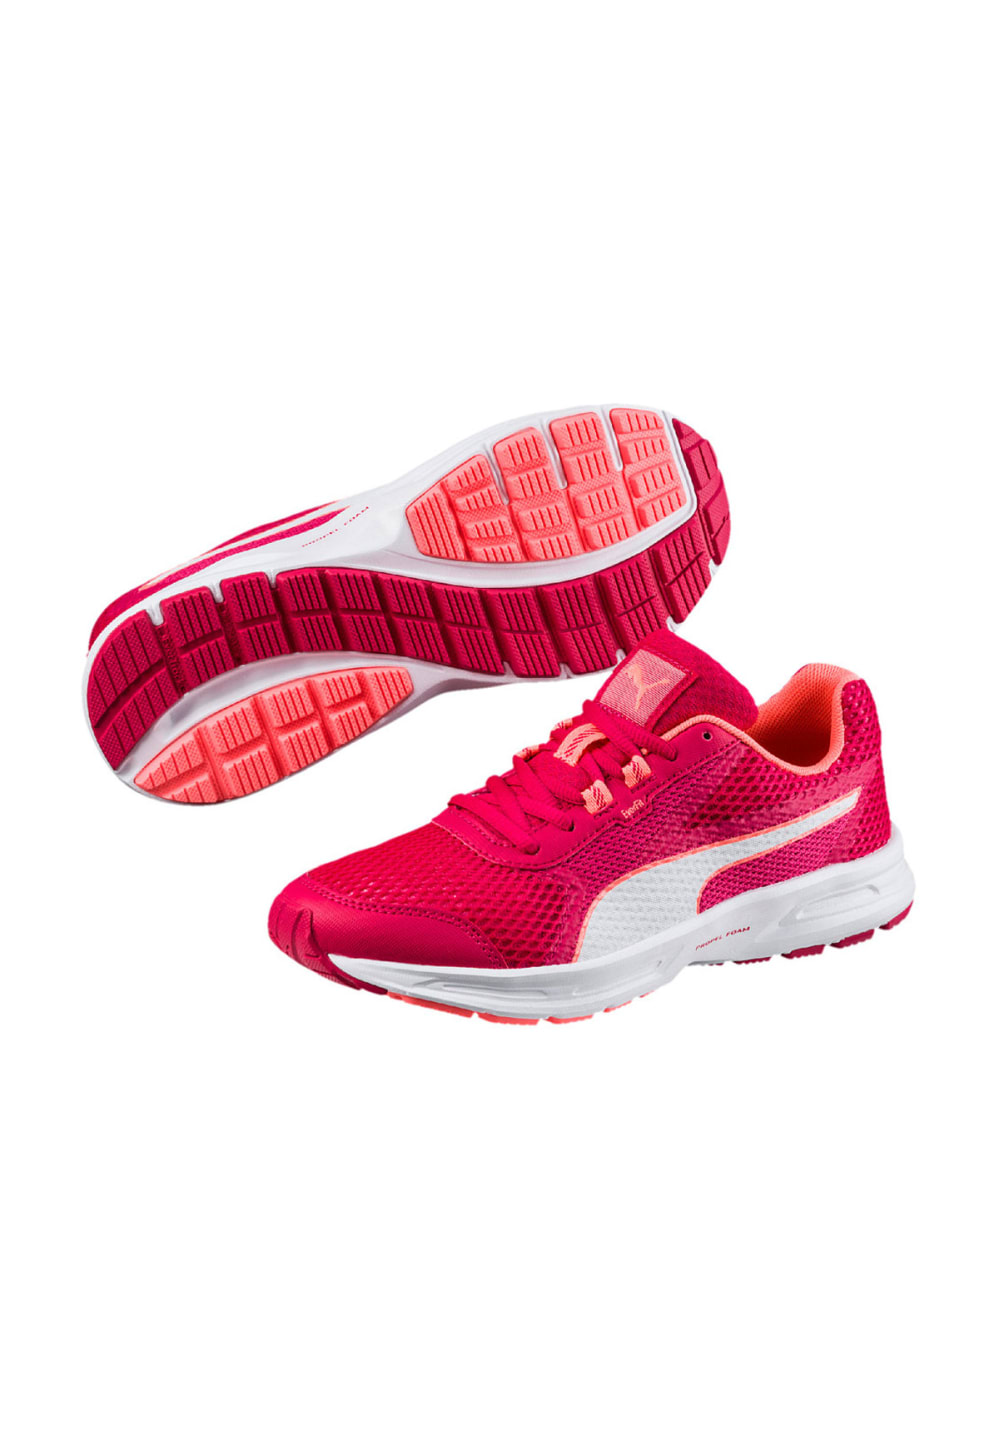 Puma Essential Runner Chaussures running pour Femme Rouge